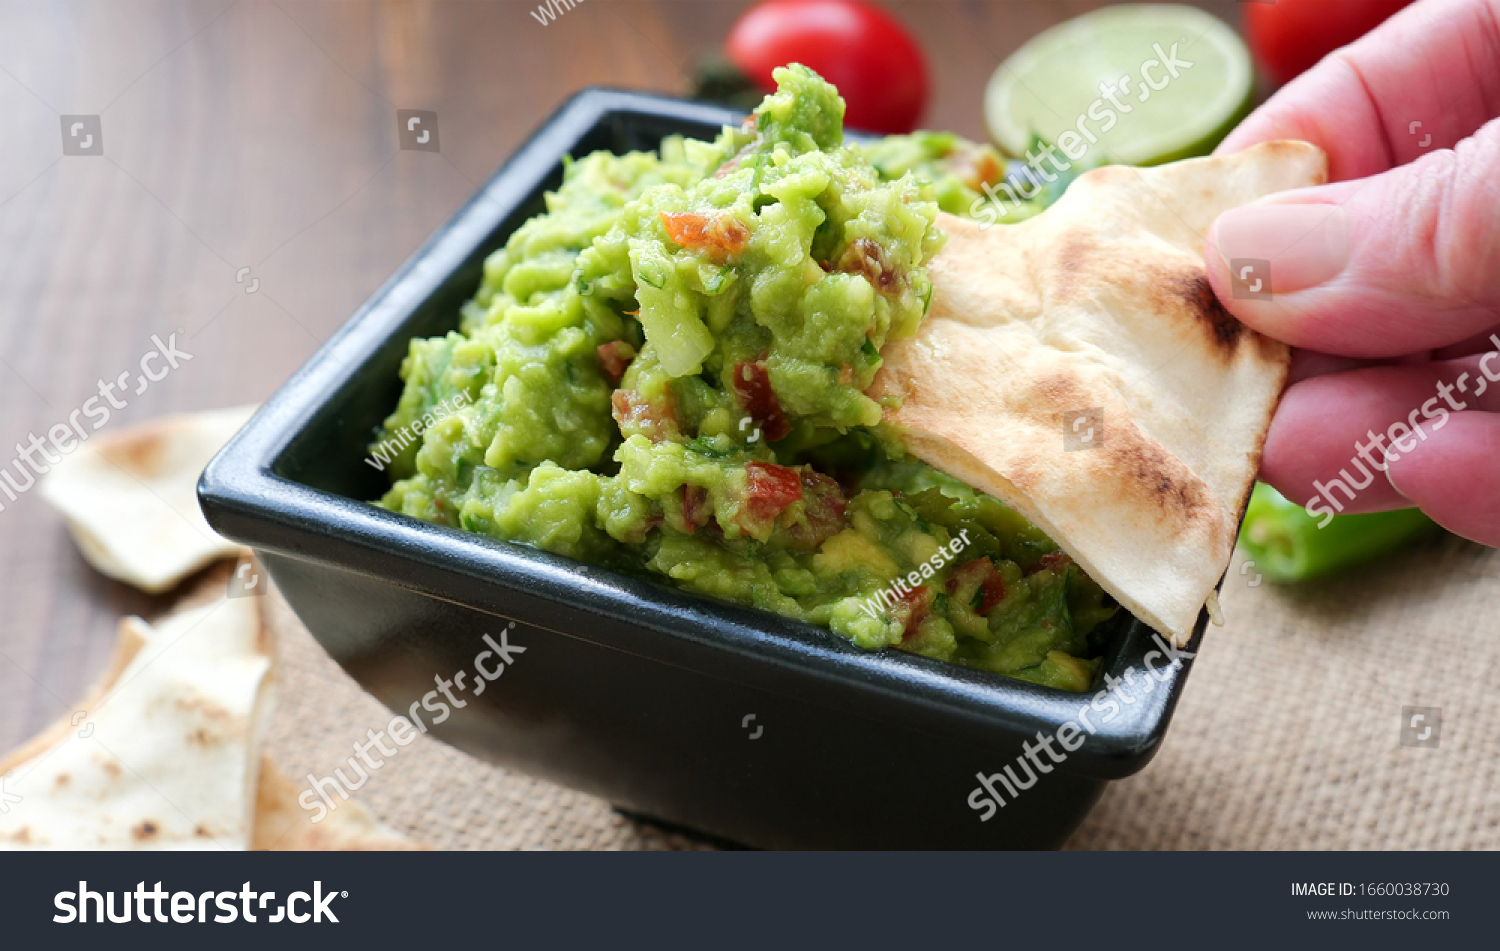 Hand dipping wheat tortilla chips into a bowl of freshly made guacamole dip